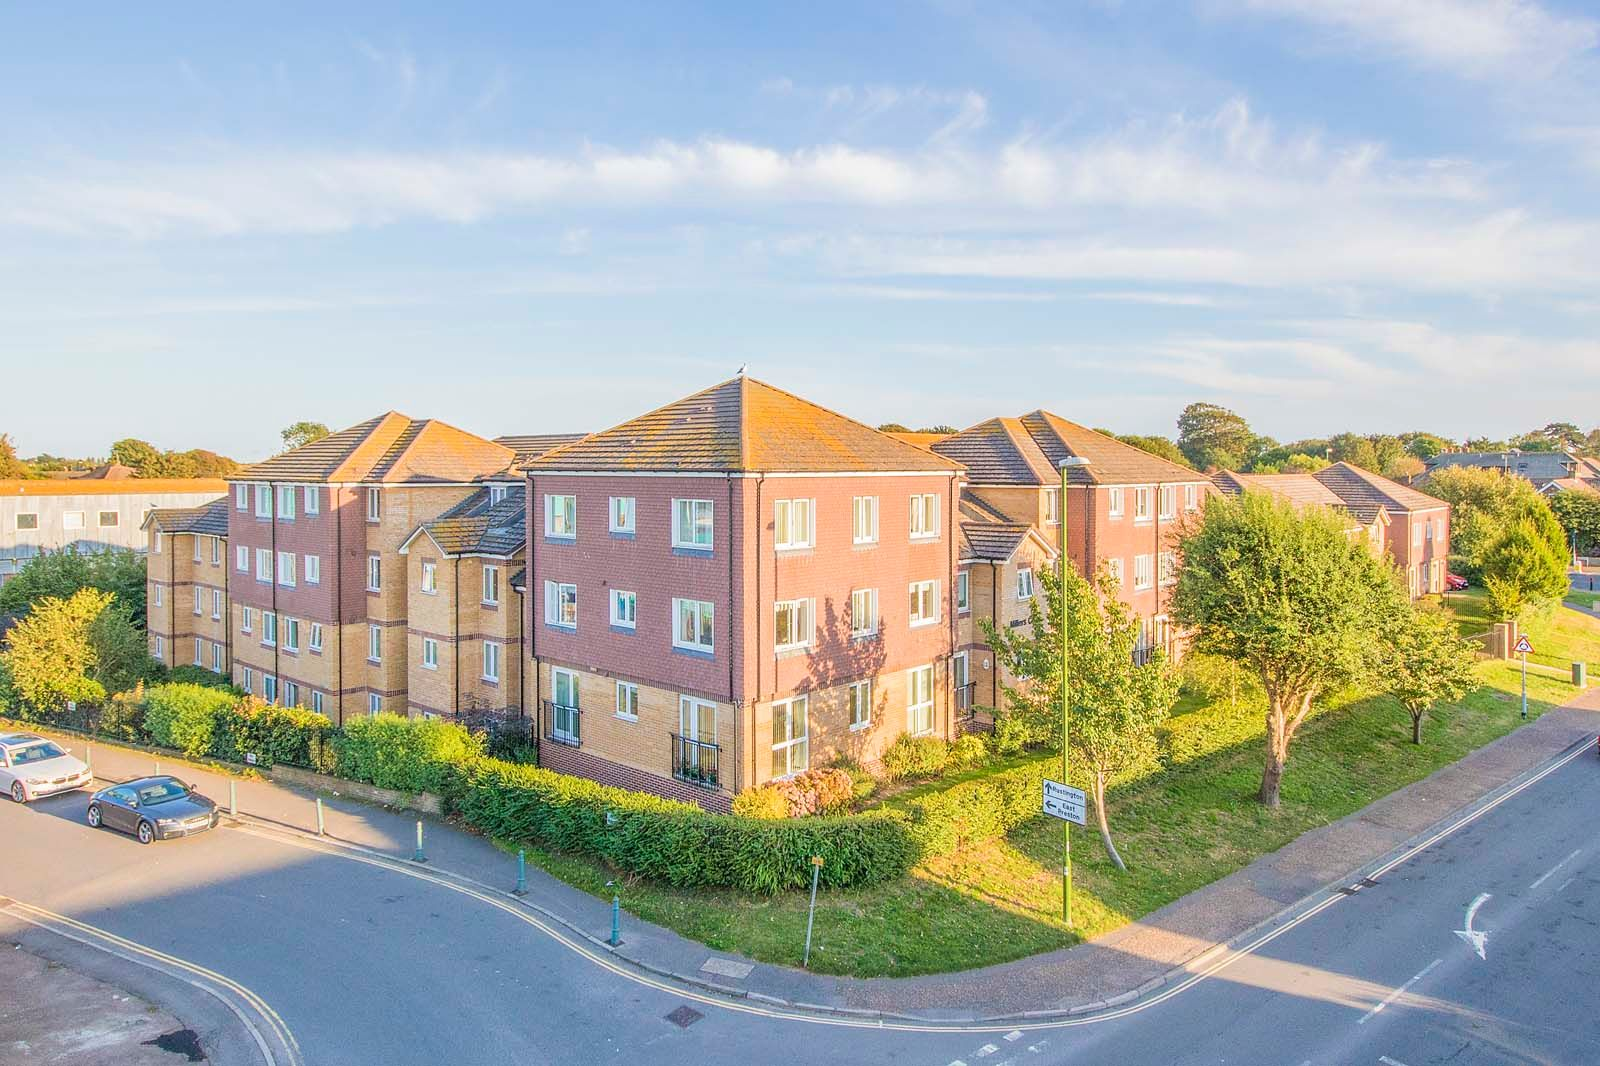 2 bed for sale in East Preston - Property Image 1